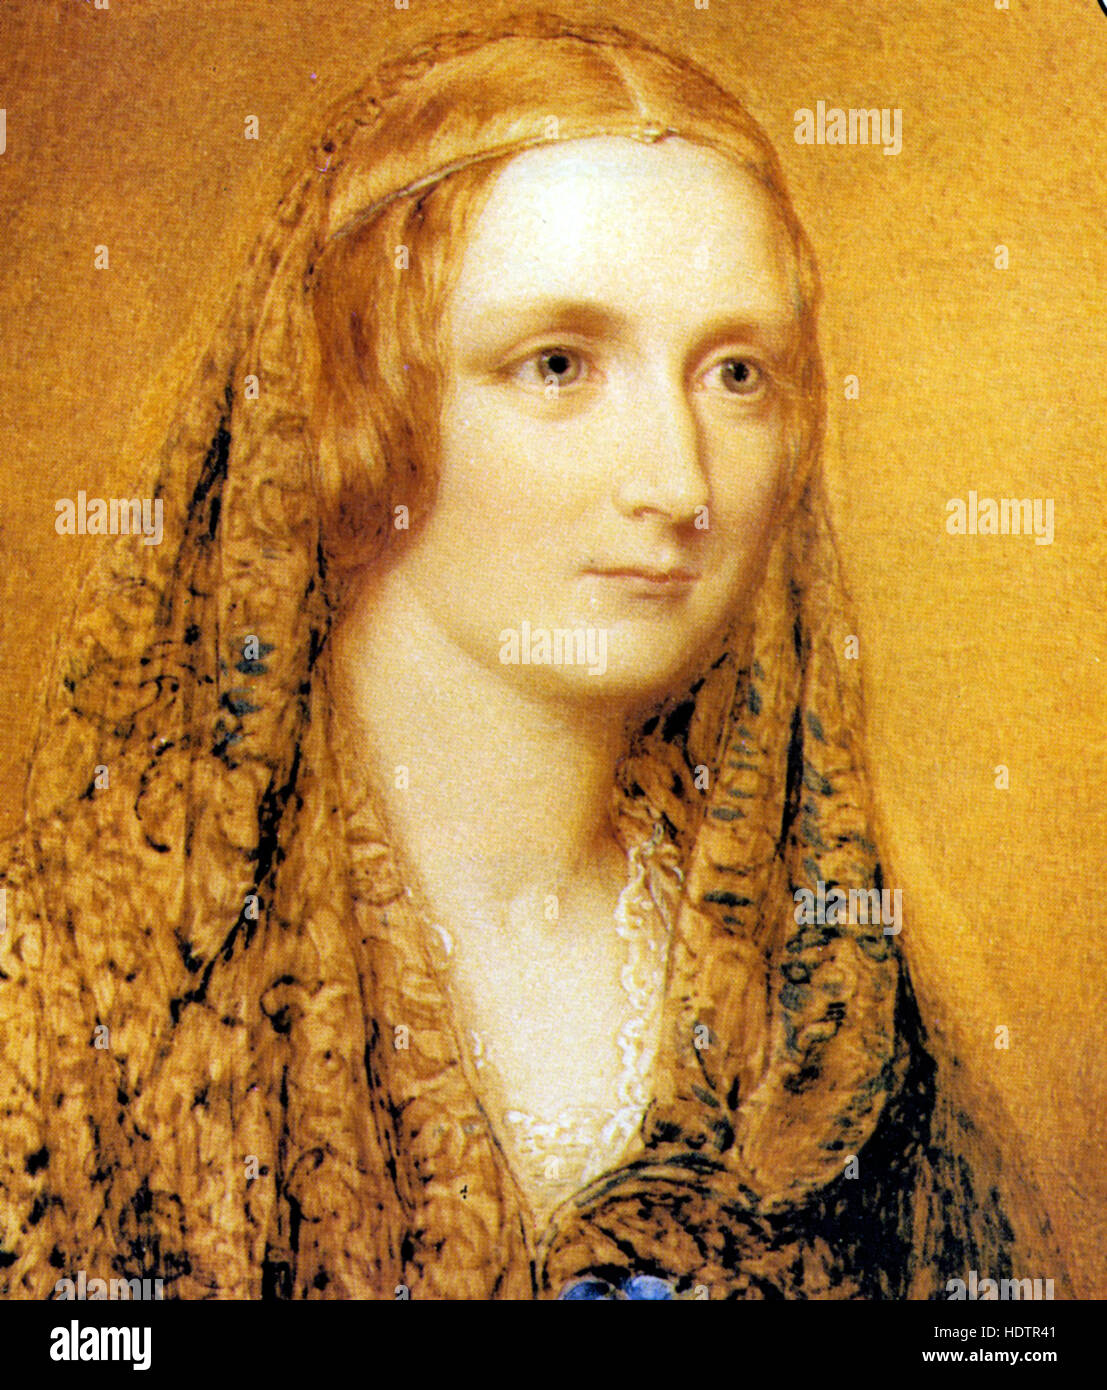 MARY SHELLEY (1797-1851) English author of Frankenstei in a portrait Stock Photo: 129008097 - Alamy